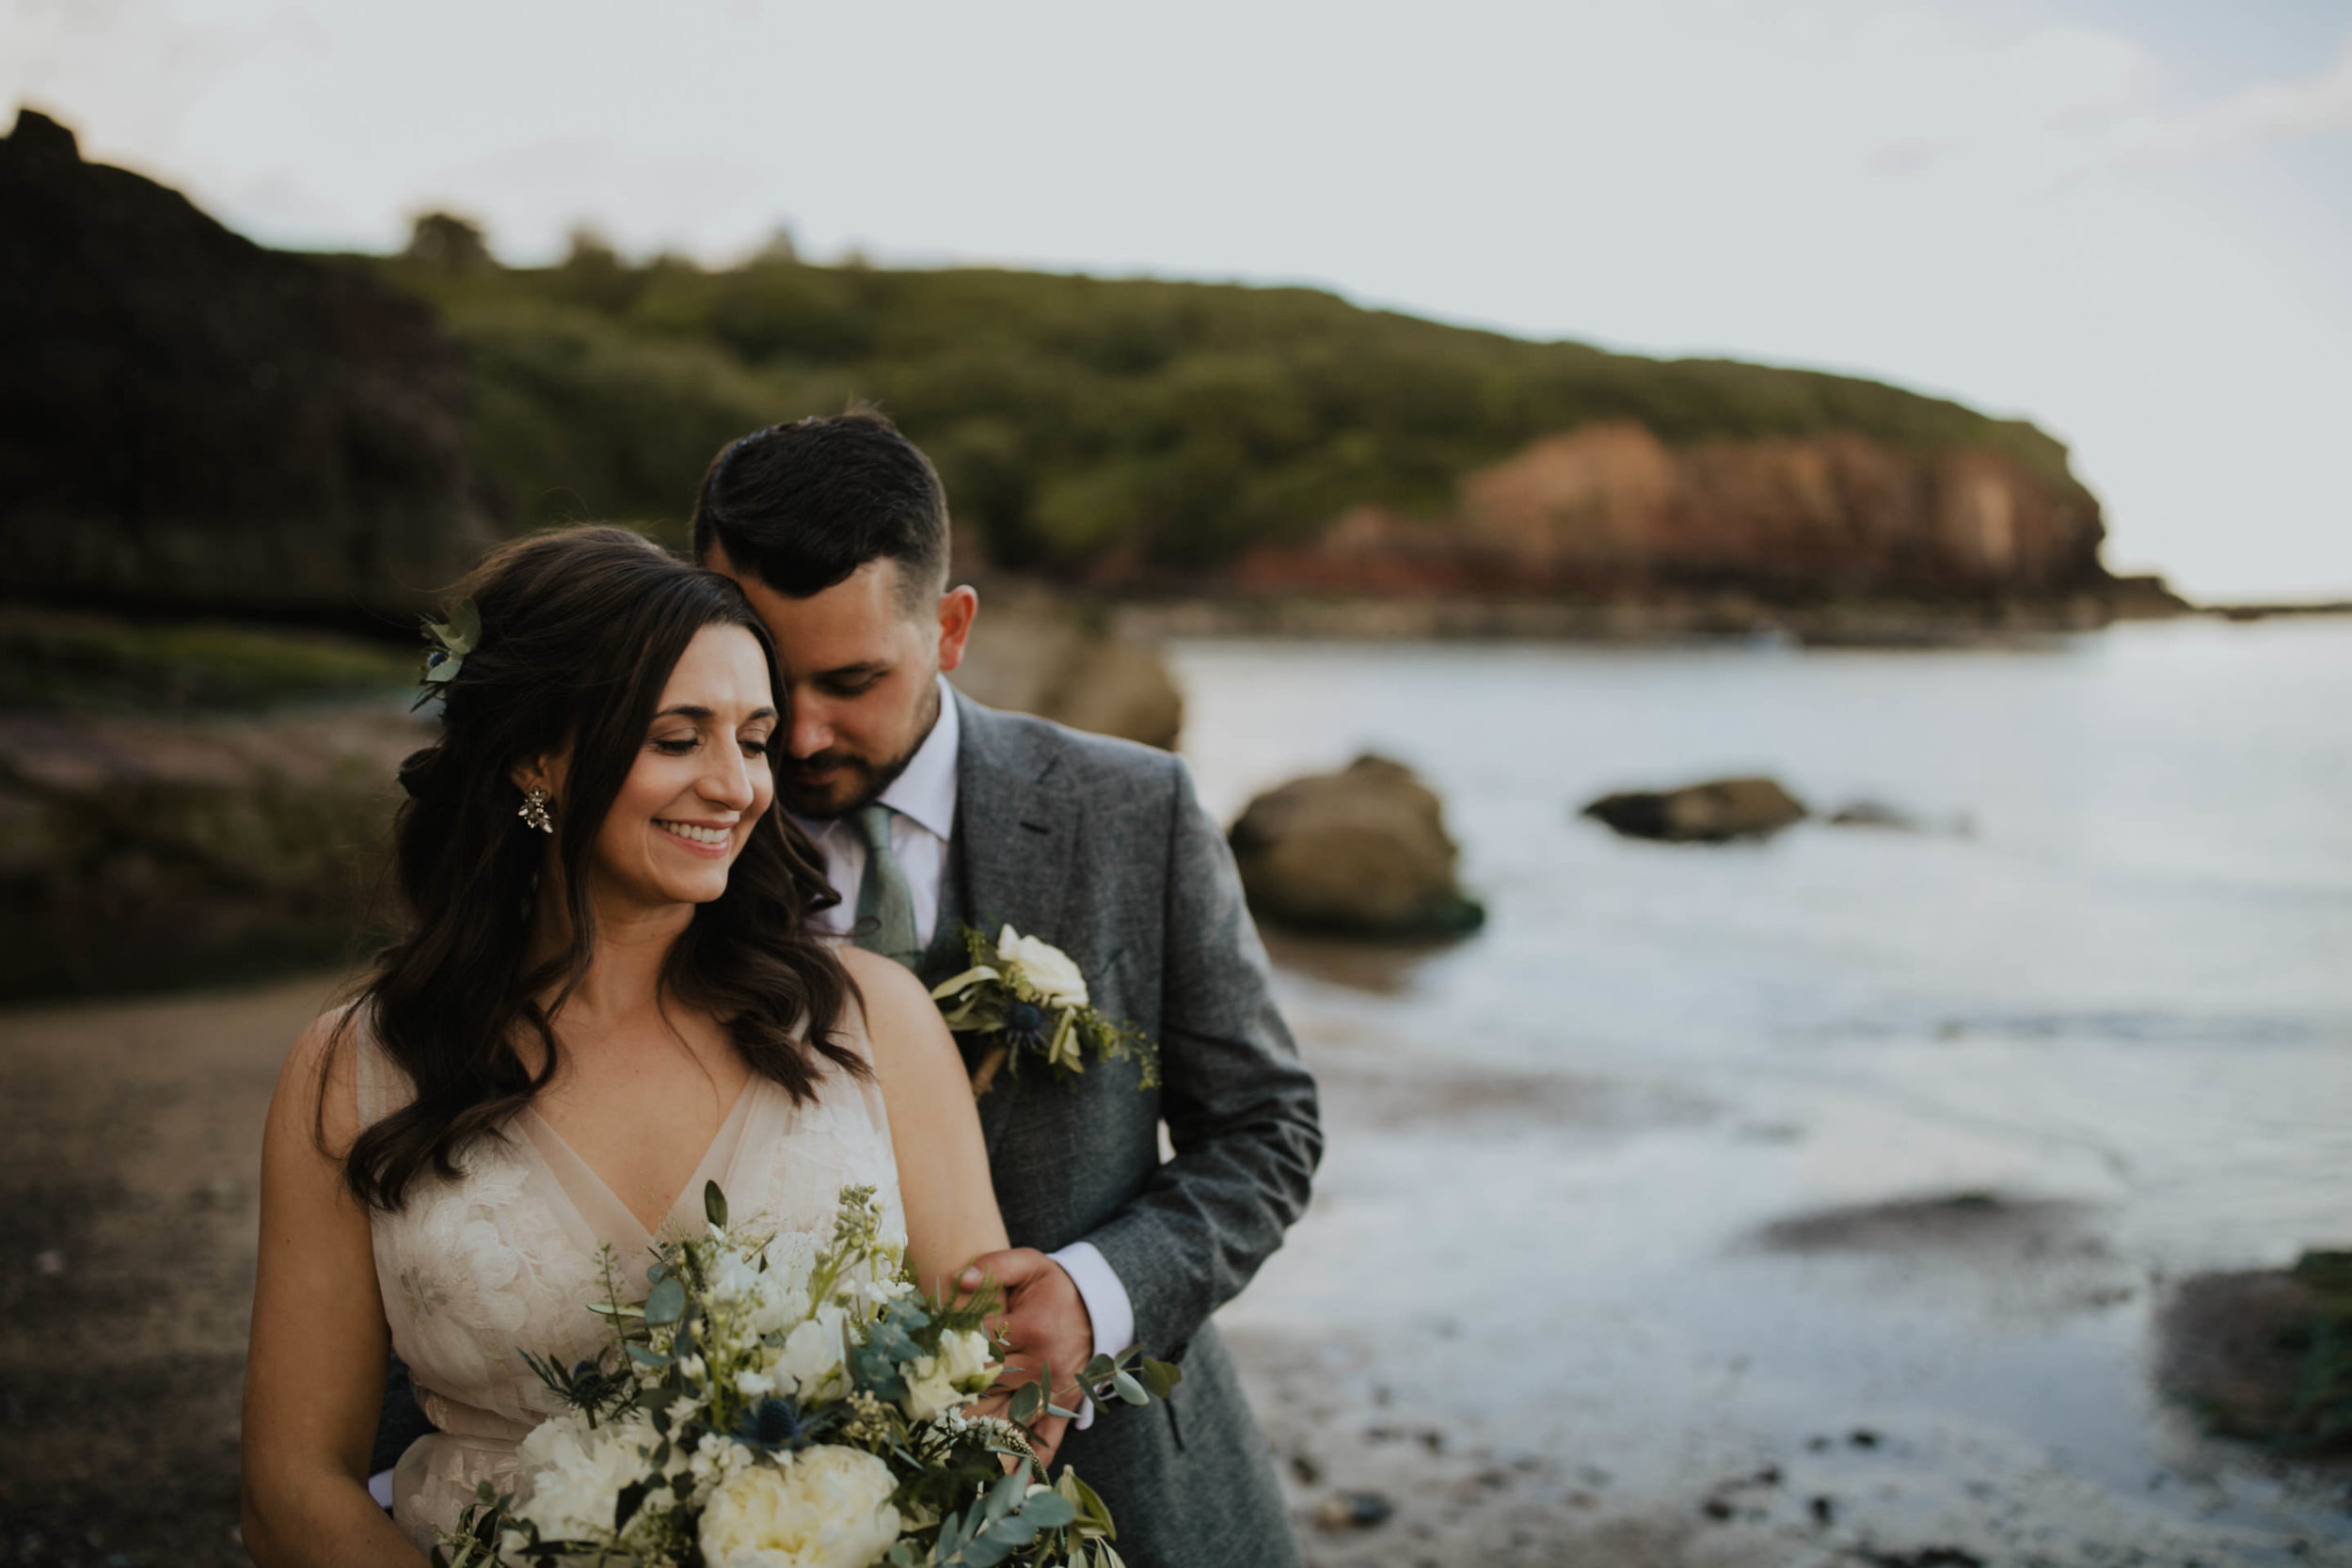 l-a-the-haven-dunmore-east-wedding-photographer-livia-figueiredo-26.jpg